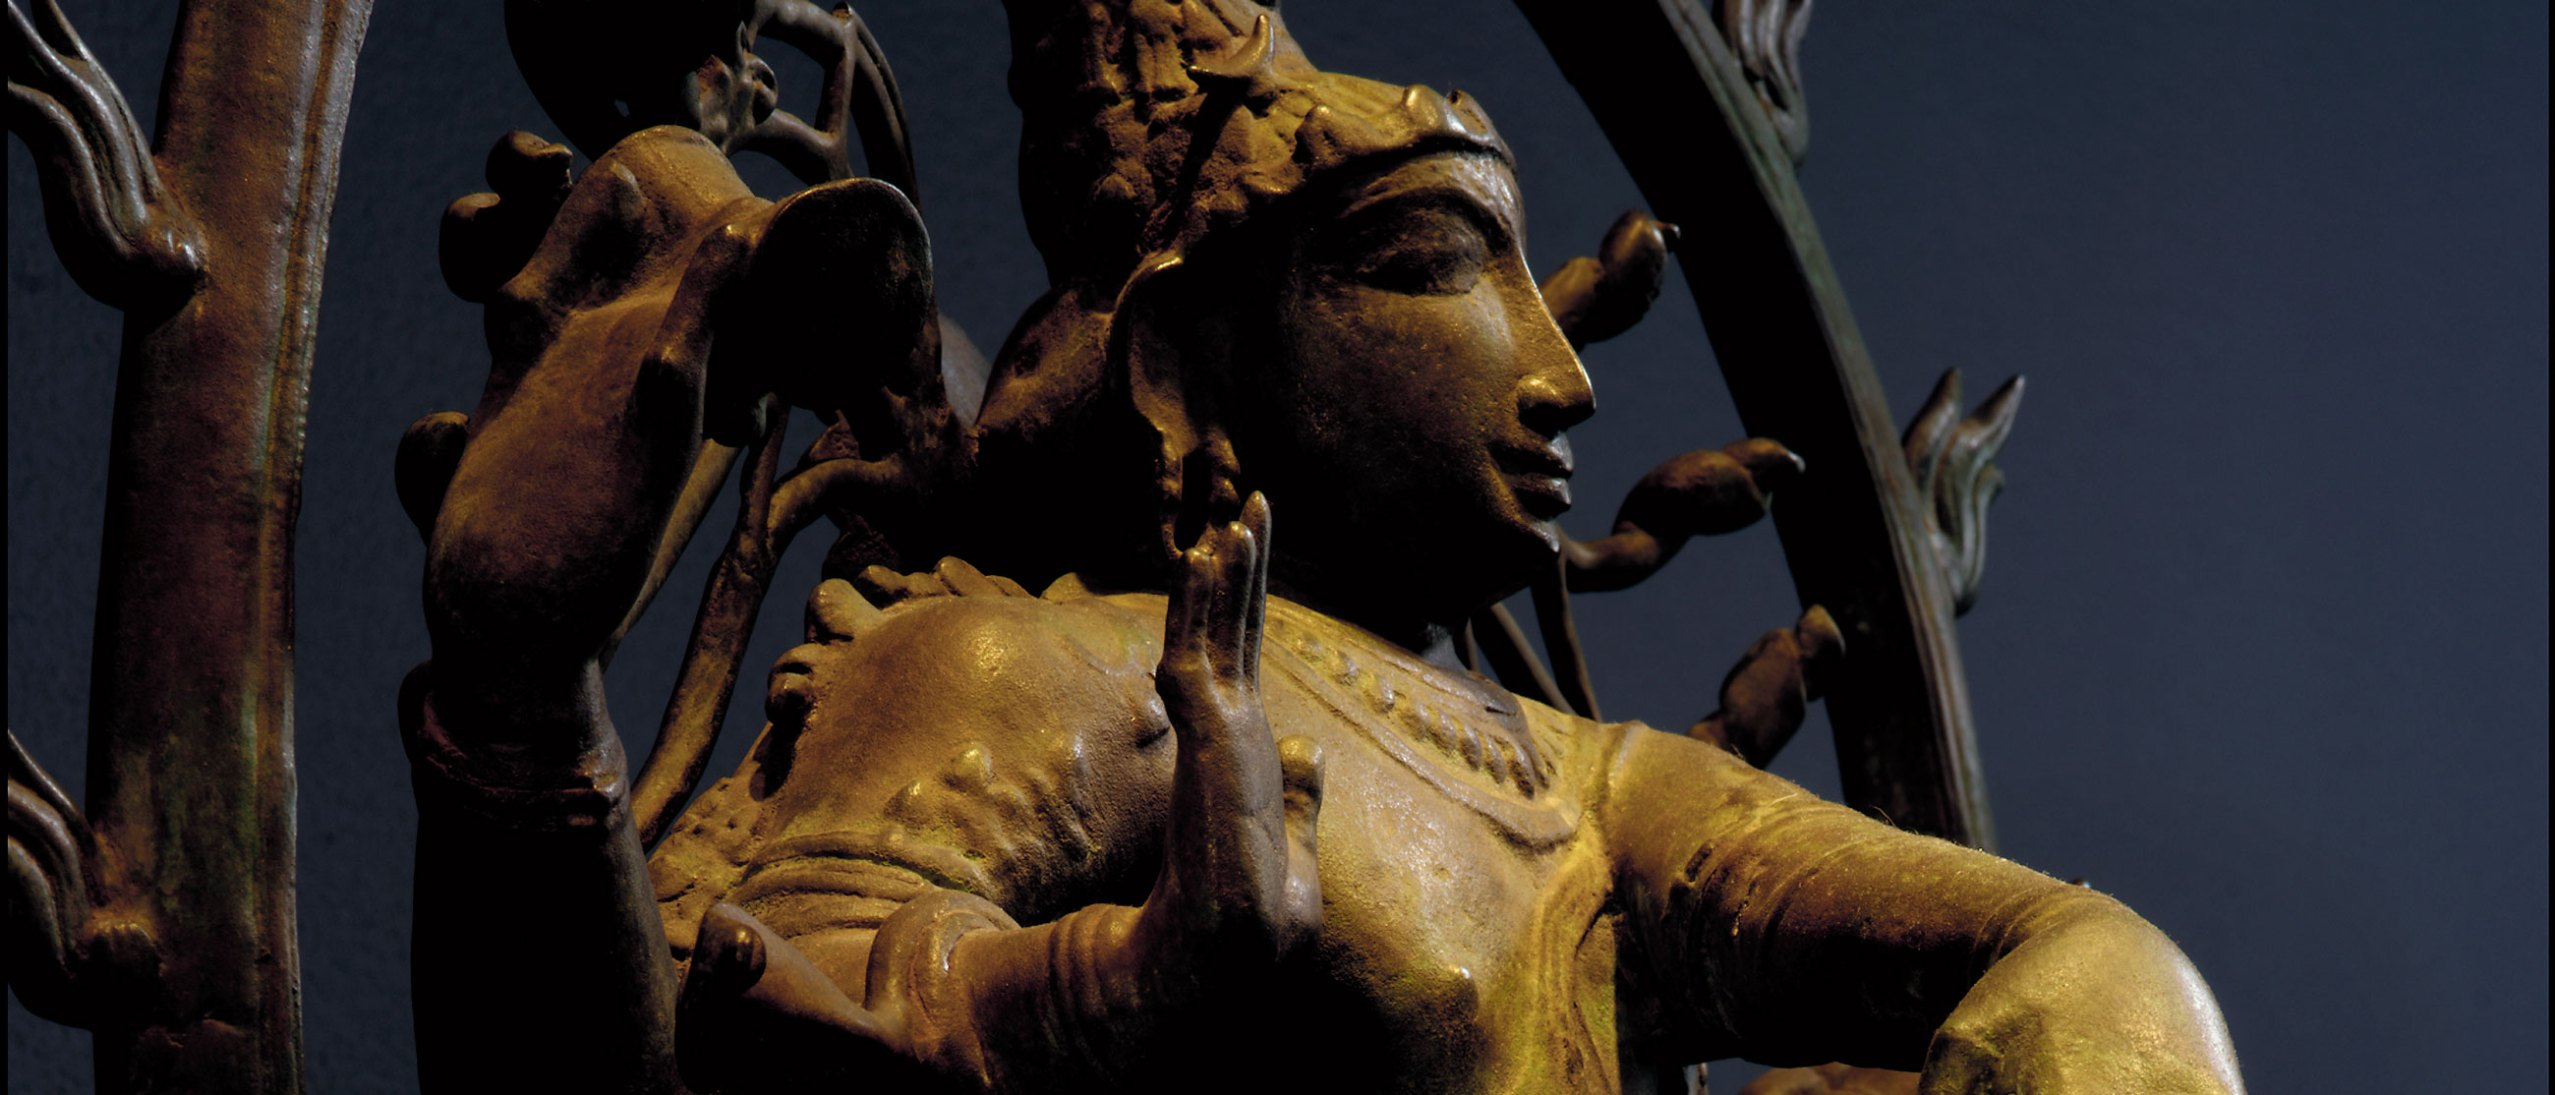 detail, Shiva Nataraja sculpture,